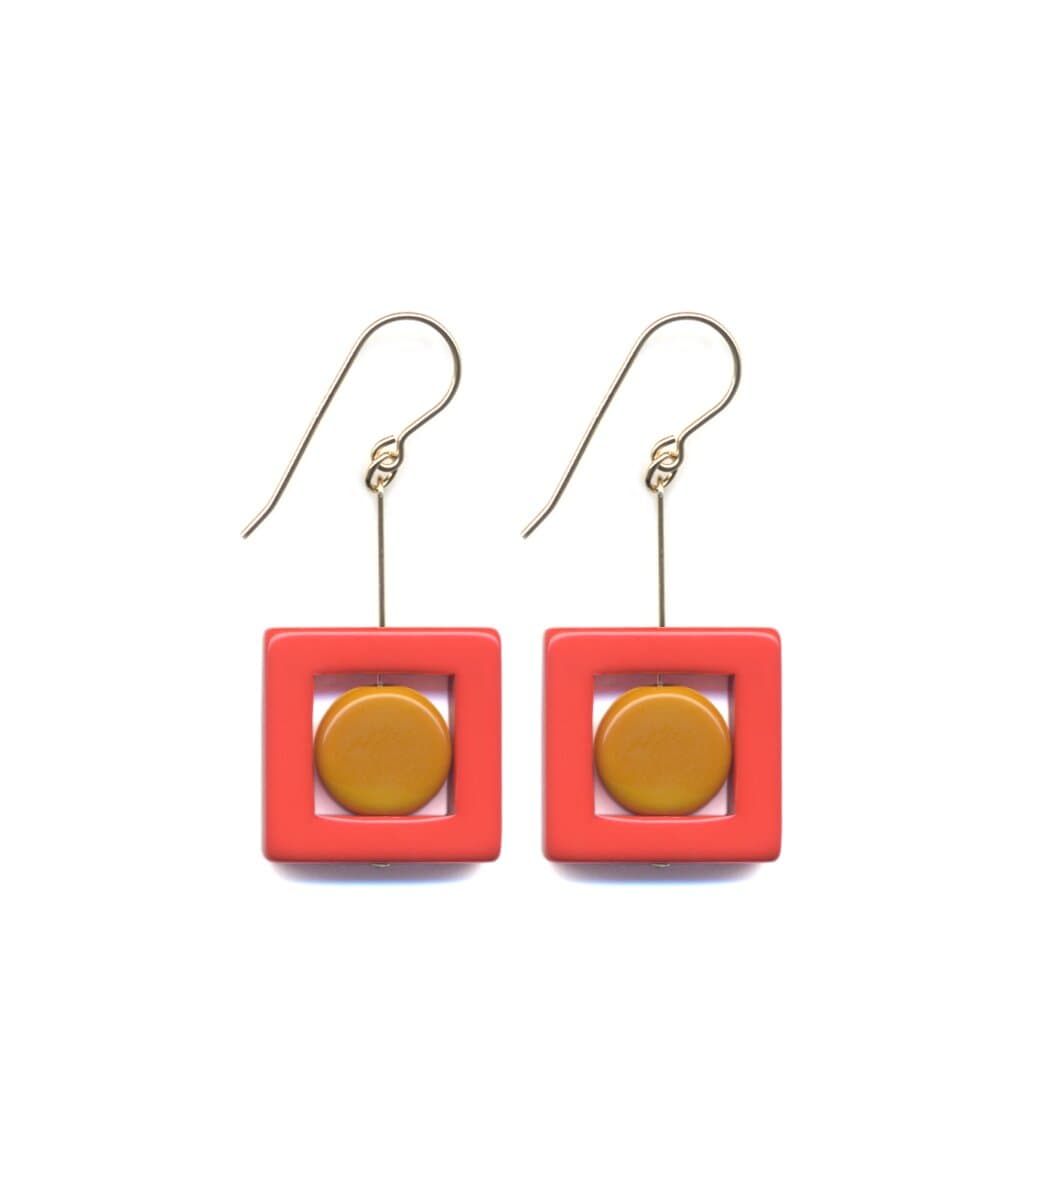 Irk Jewelry I. Ronni Kappos E1690 Red Square Drop Earrings